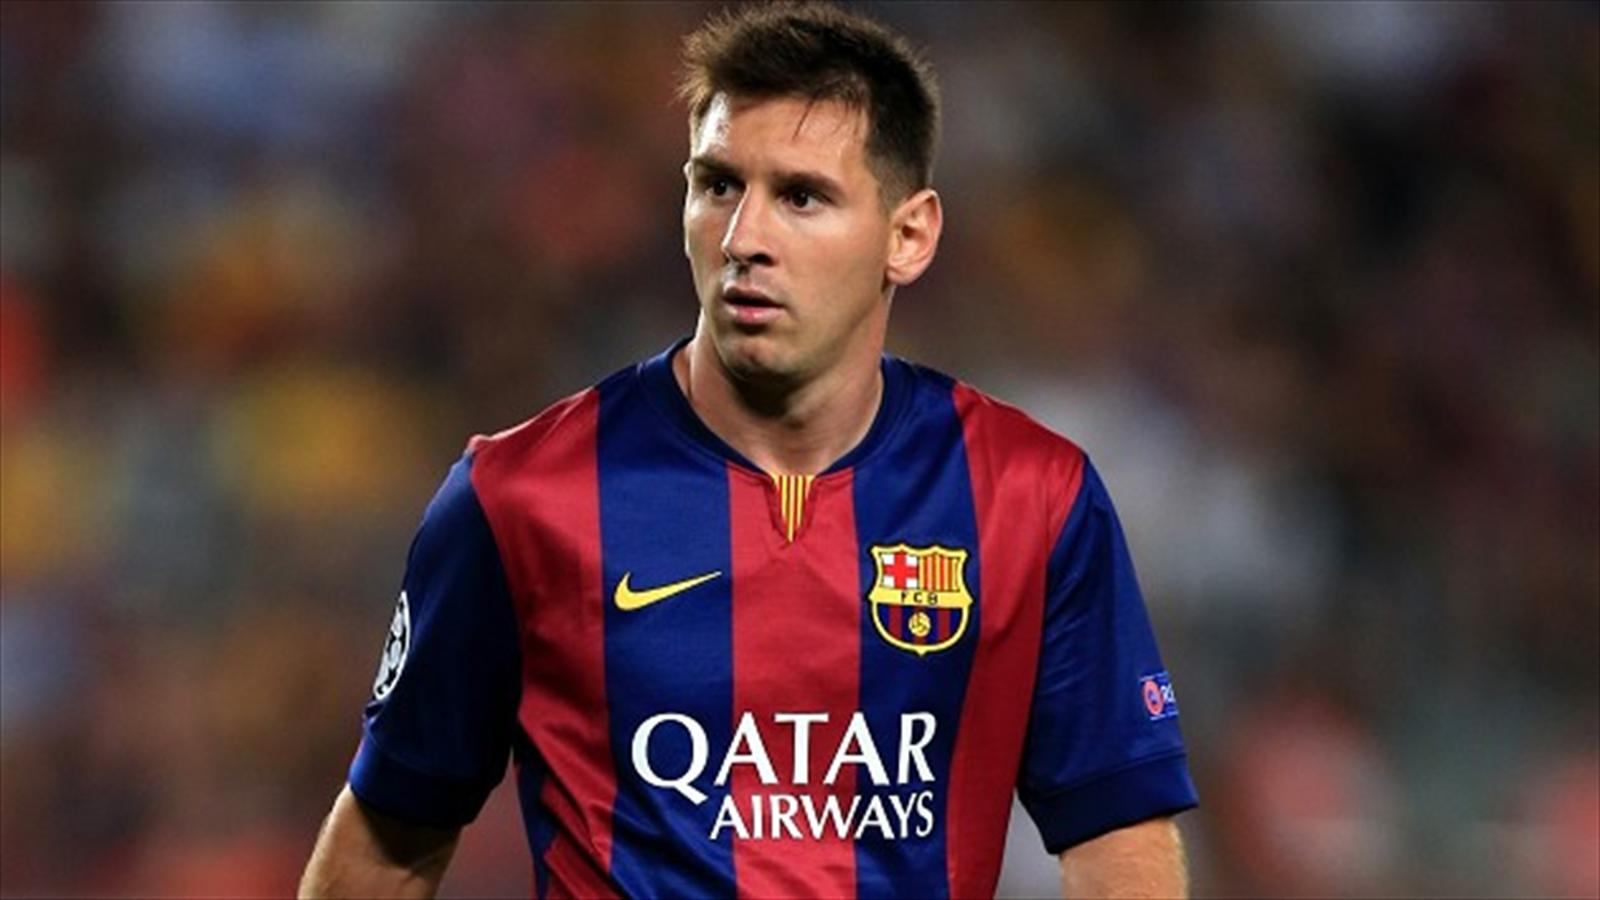 Messi's father plays down 'Barca exit' comments - Liga 2014-2015 - Football - Eurosport Asia